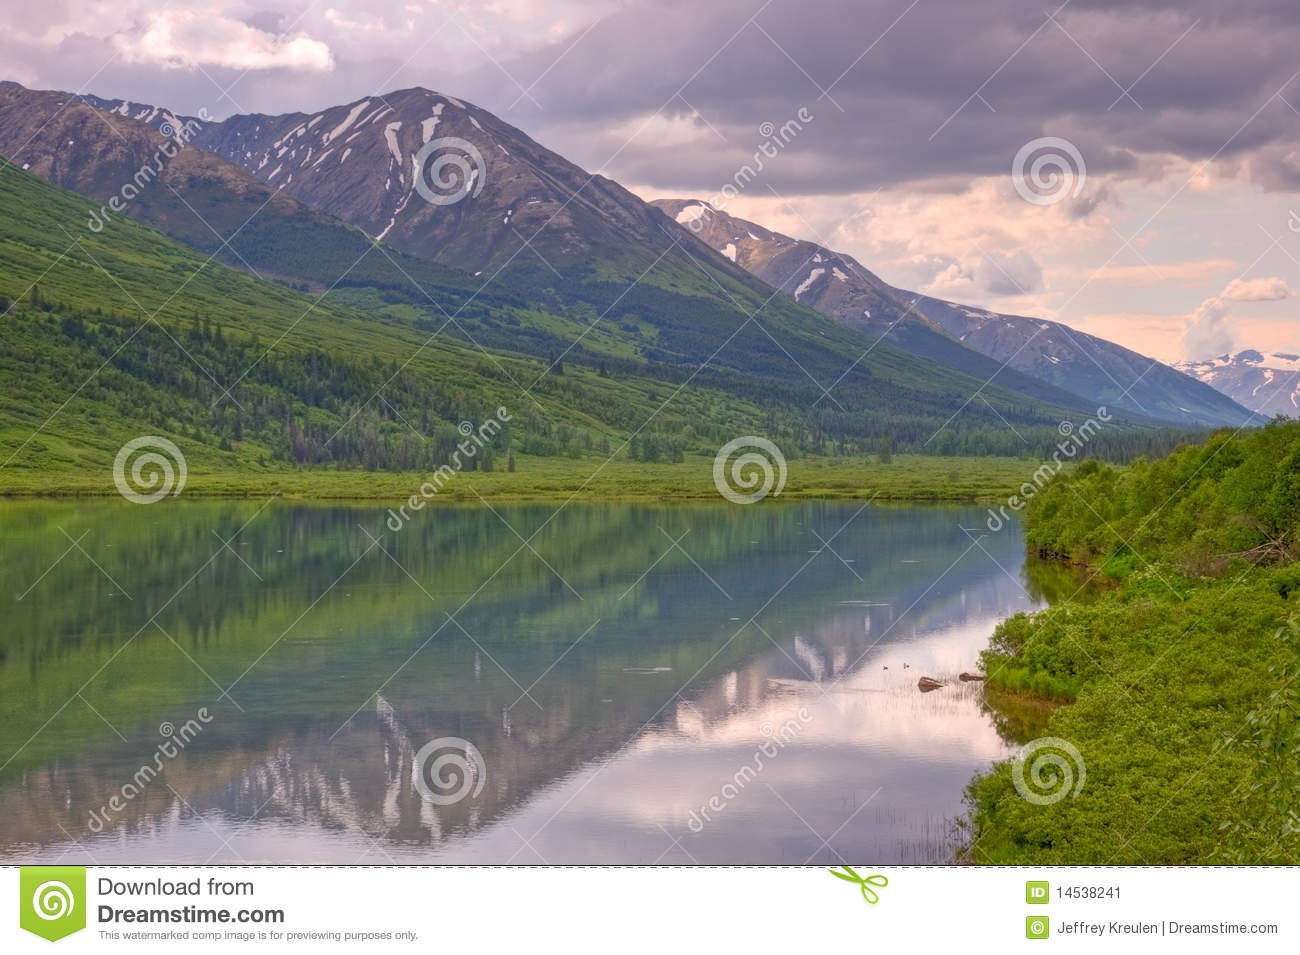 Lake Reflection in Chugach National Forest